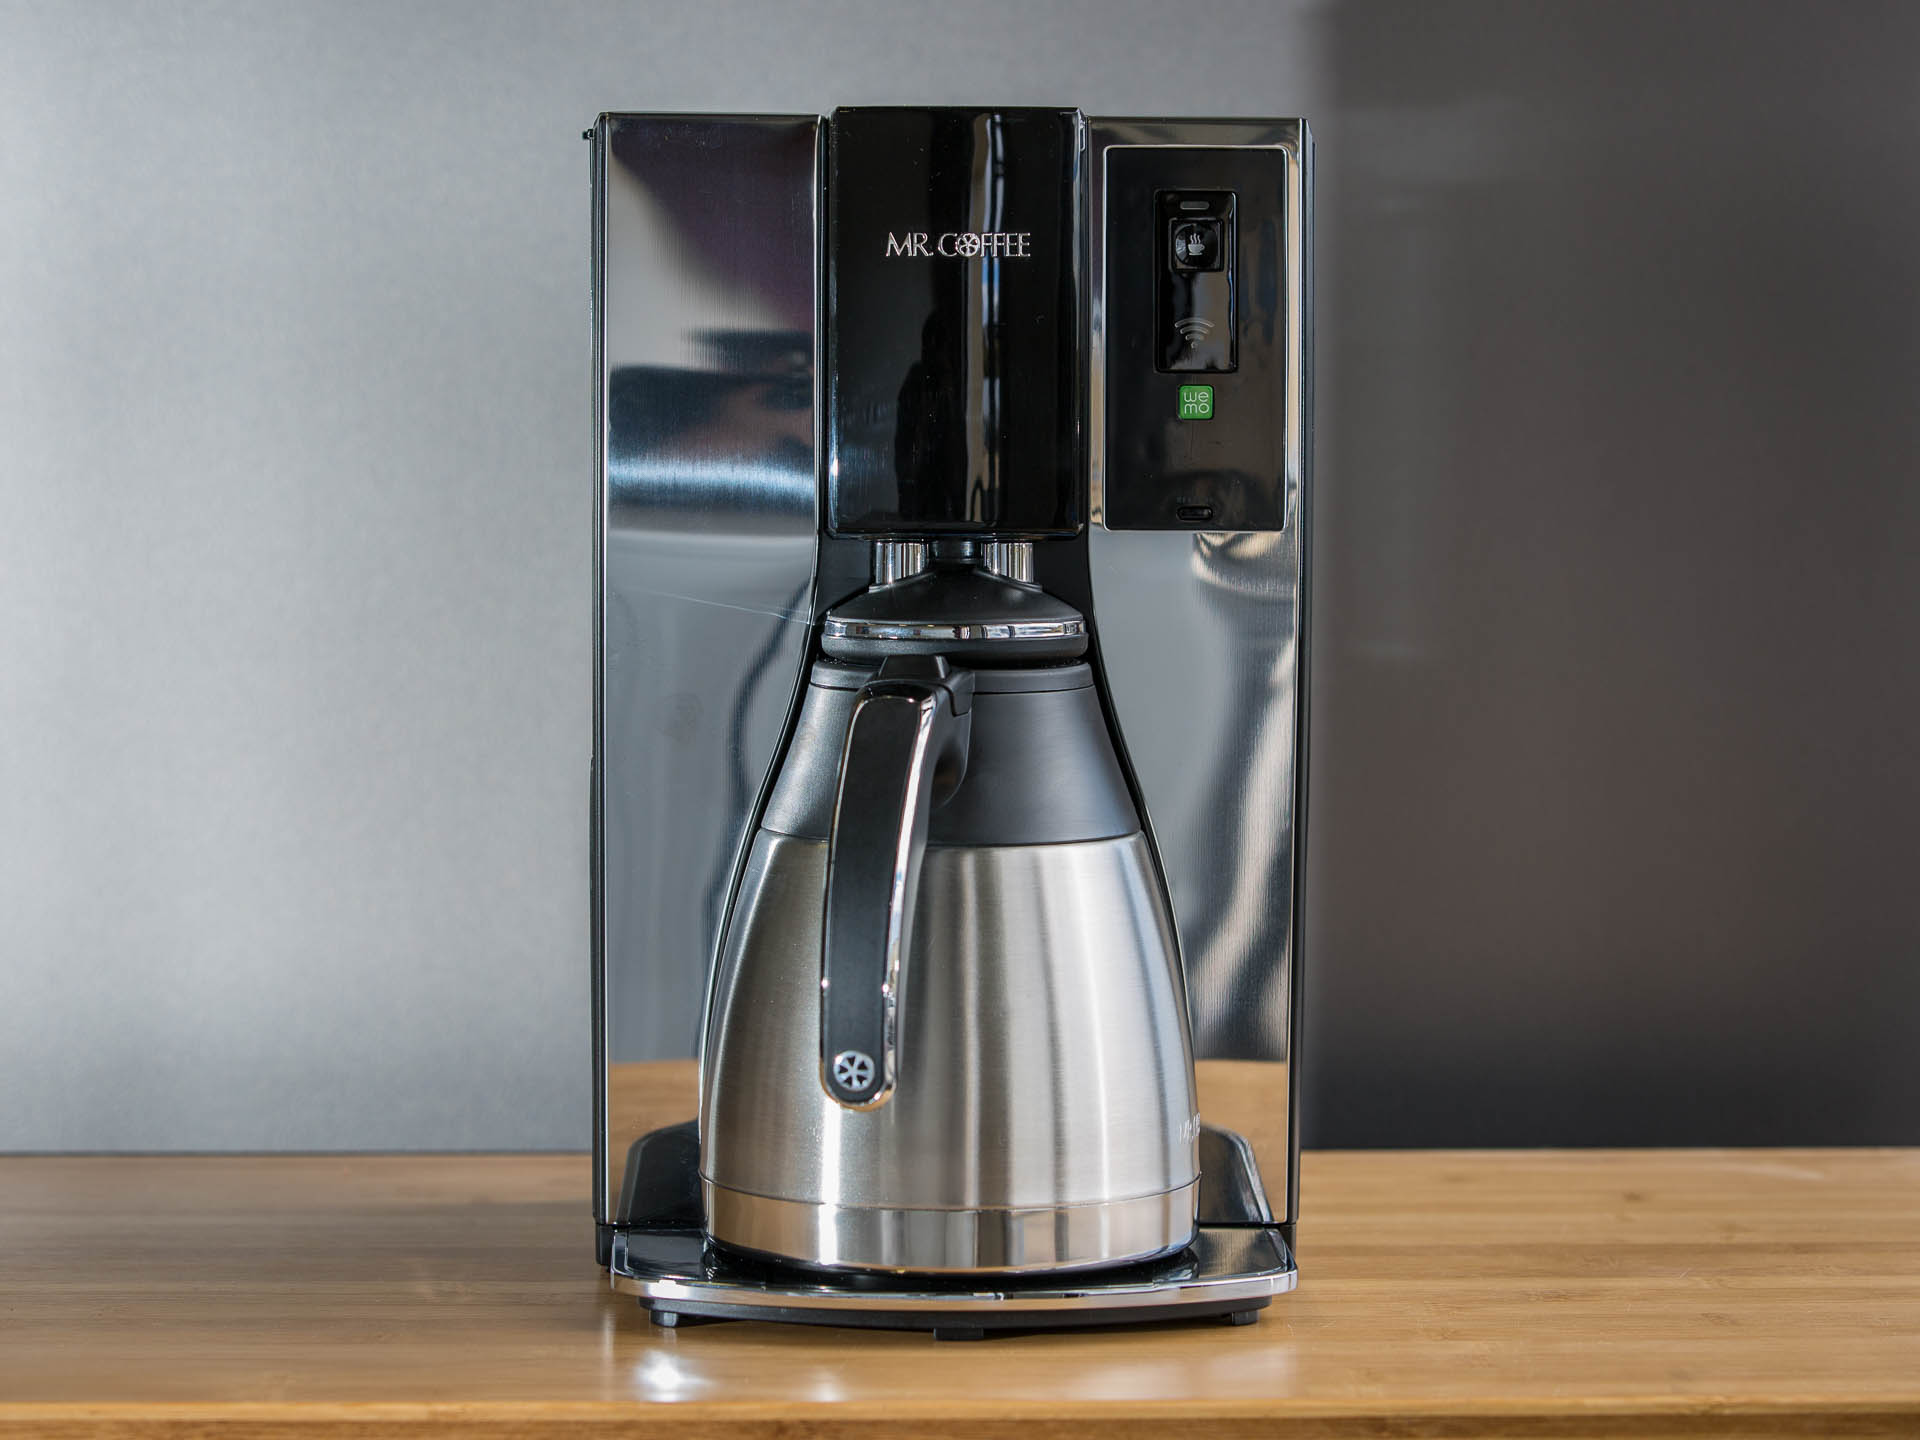 Mr Coffee Smart Coffee Maker Review : Mr.Coffee Smart Optimal Brew review - CNET